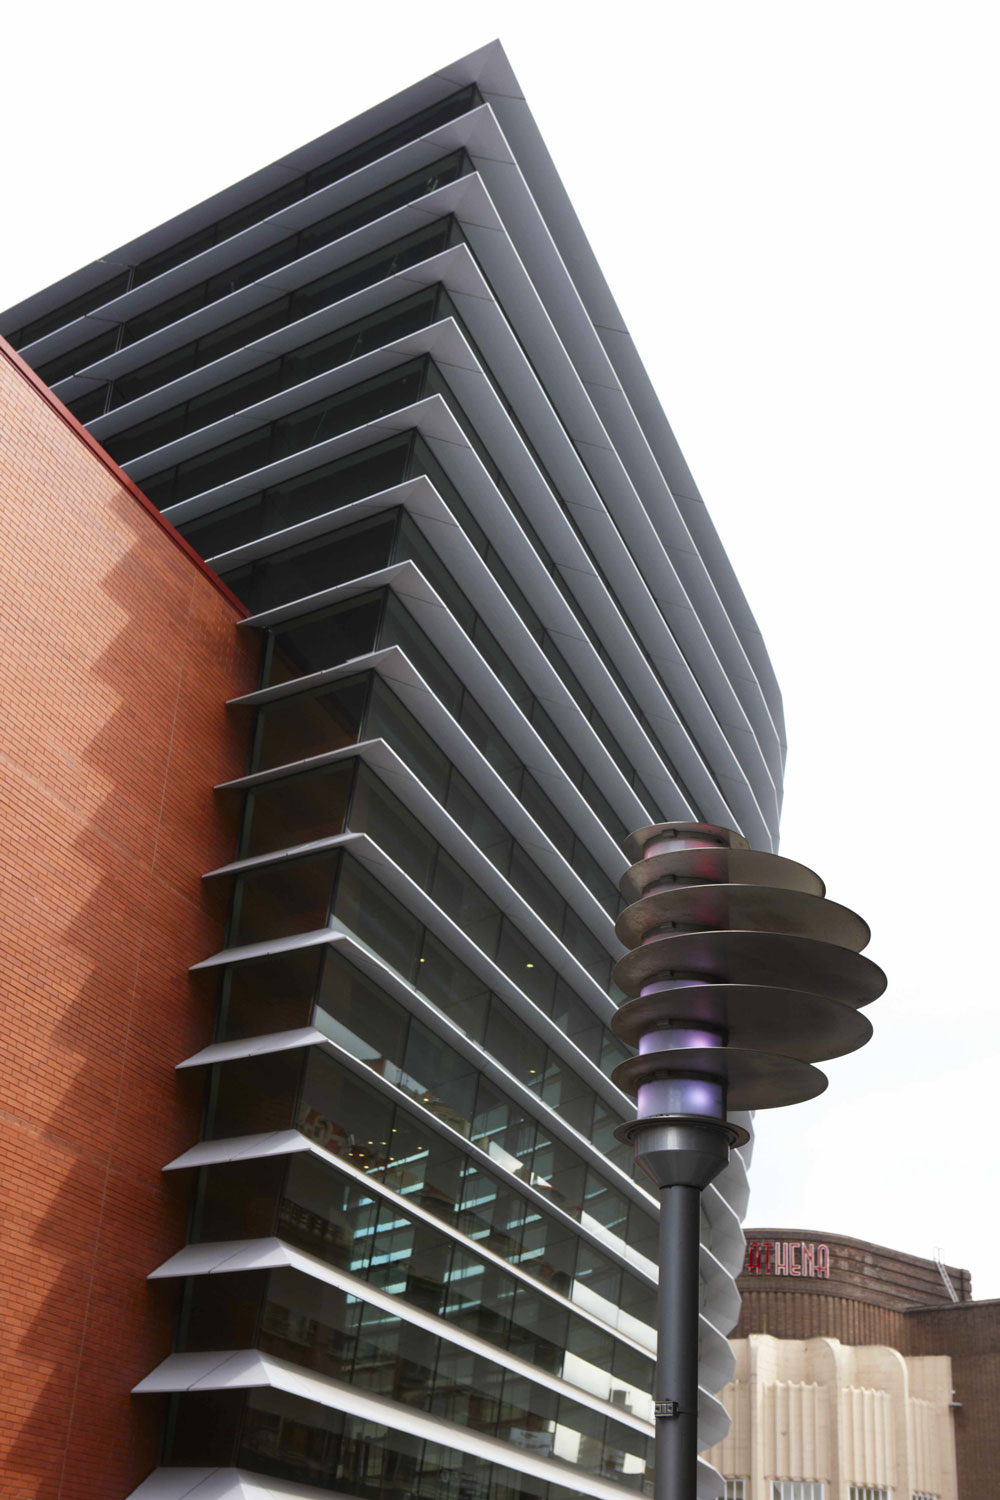 Curve Theatre Exterior, Leicester | Interior & Architecture Photographer London